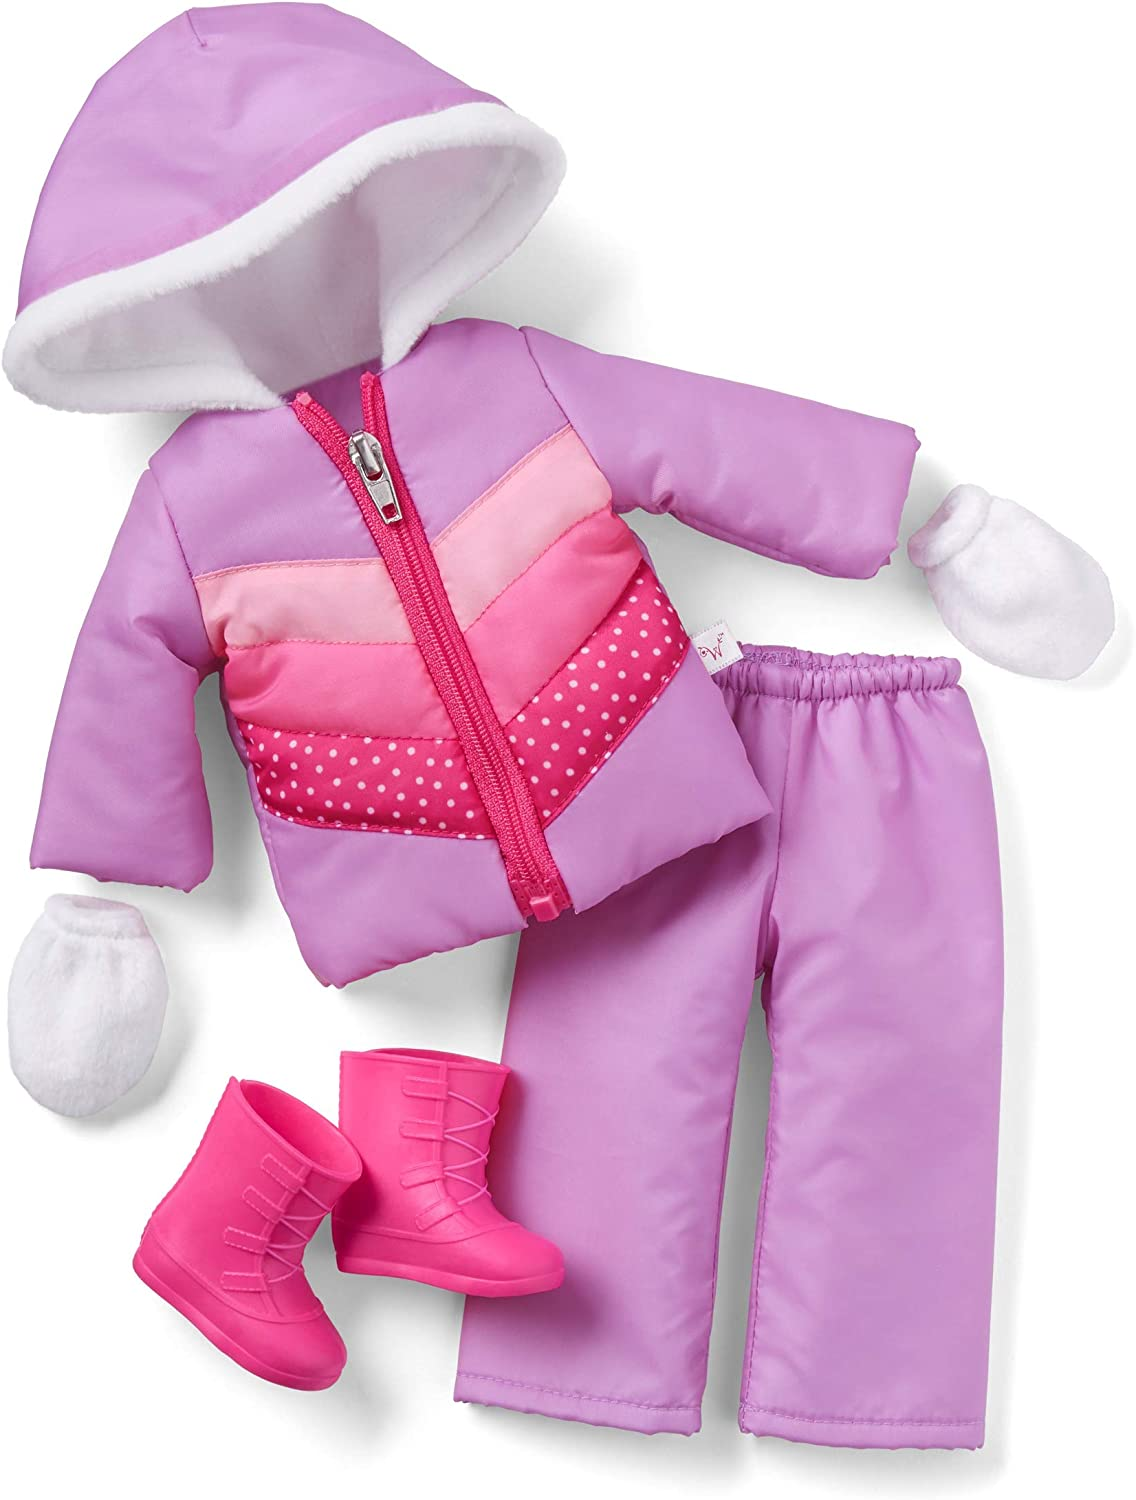 American Girl WellieWishers Frosty Fun Outfit for 14.5